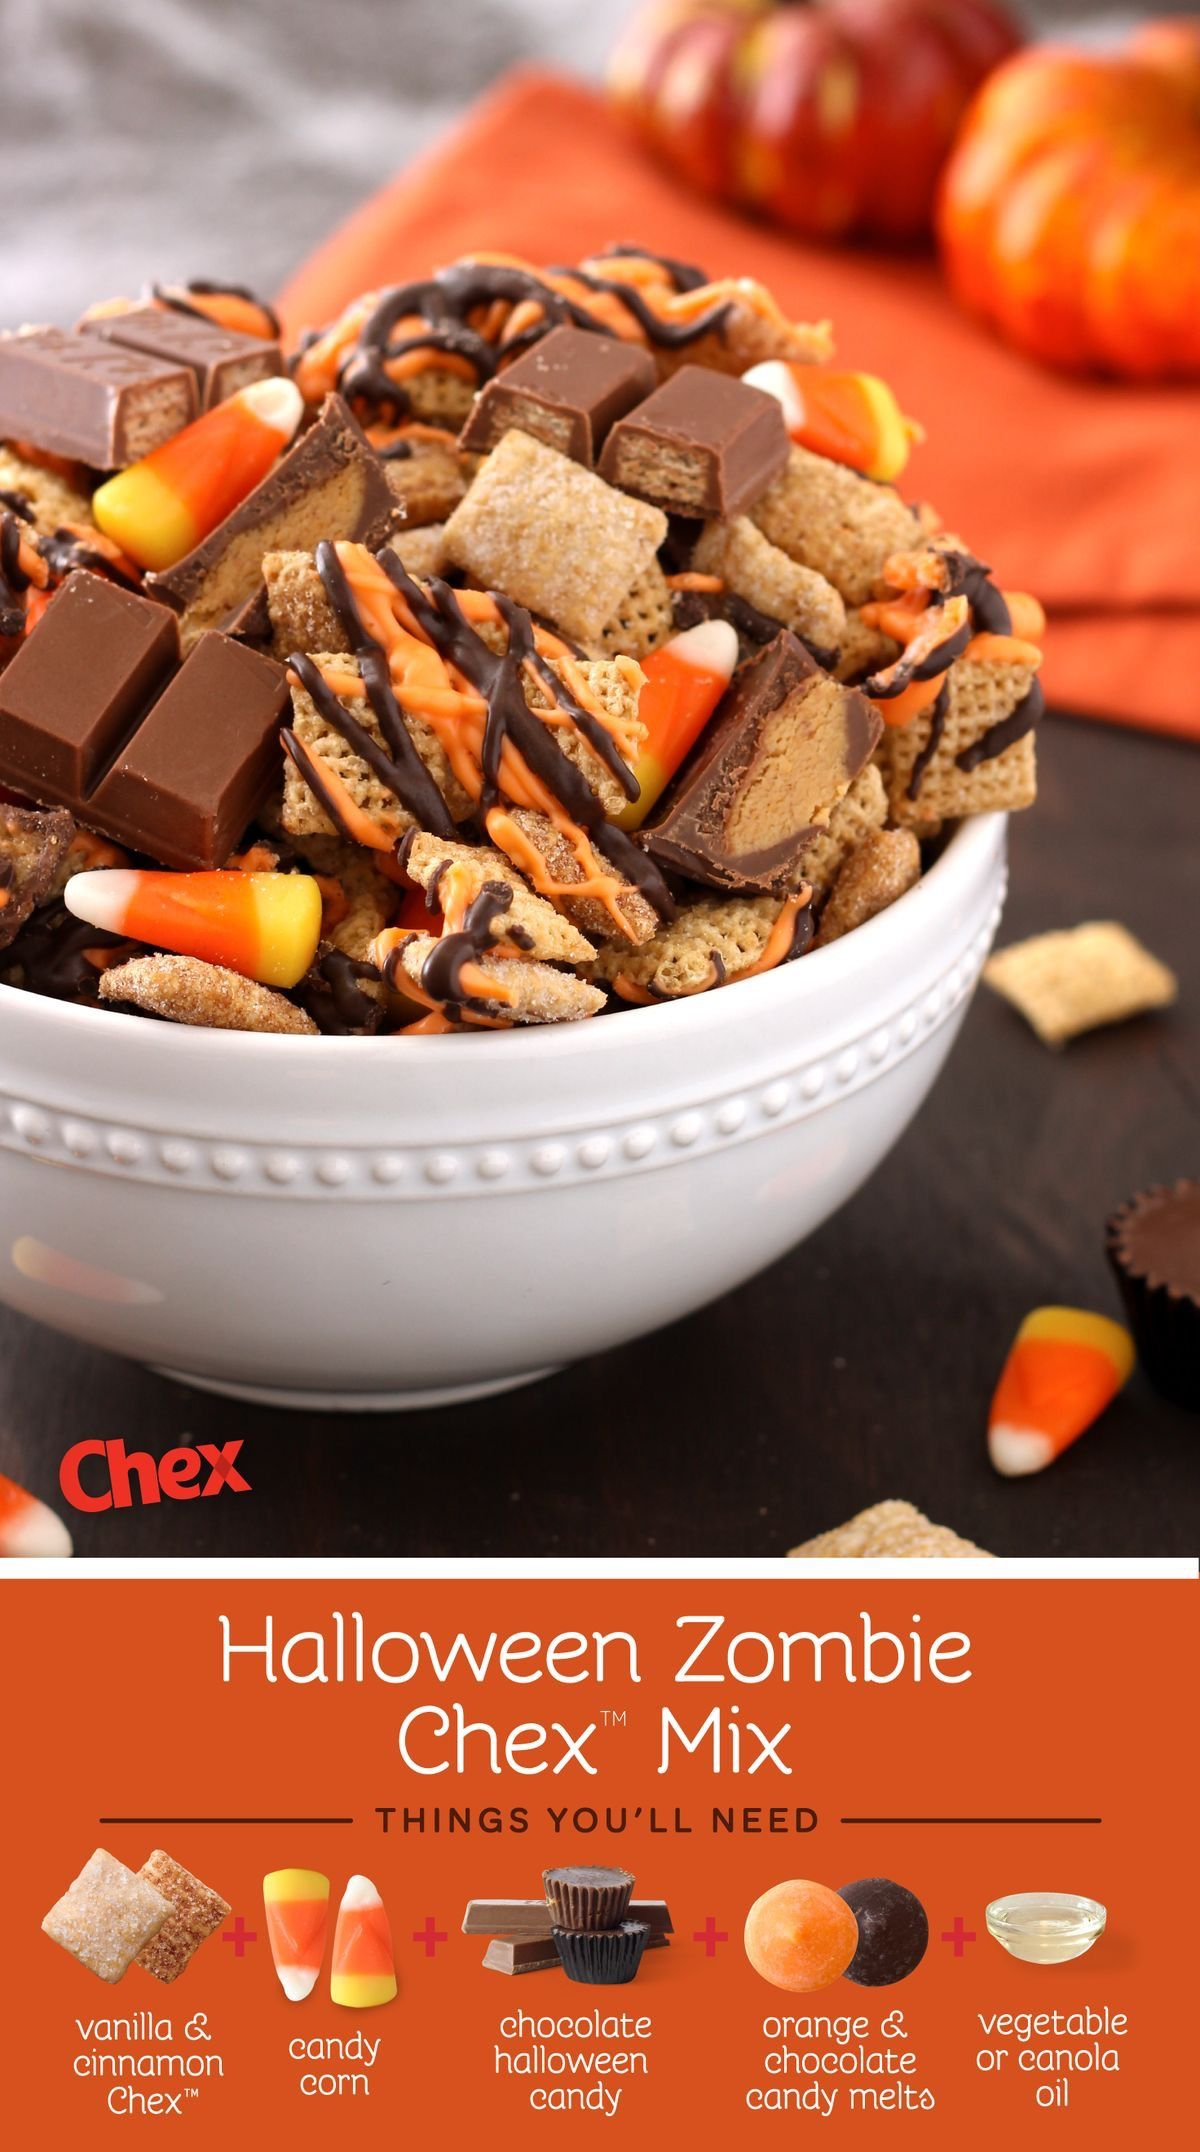 halloween zombie chex mix | holiday treats calling my name in 2018